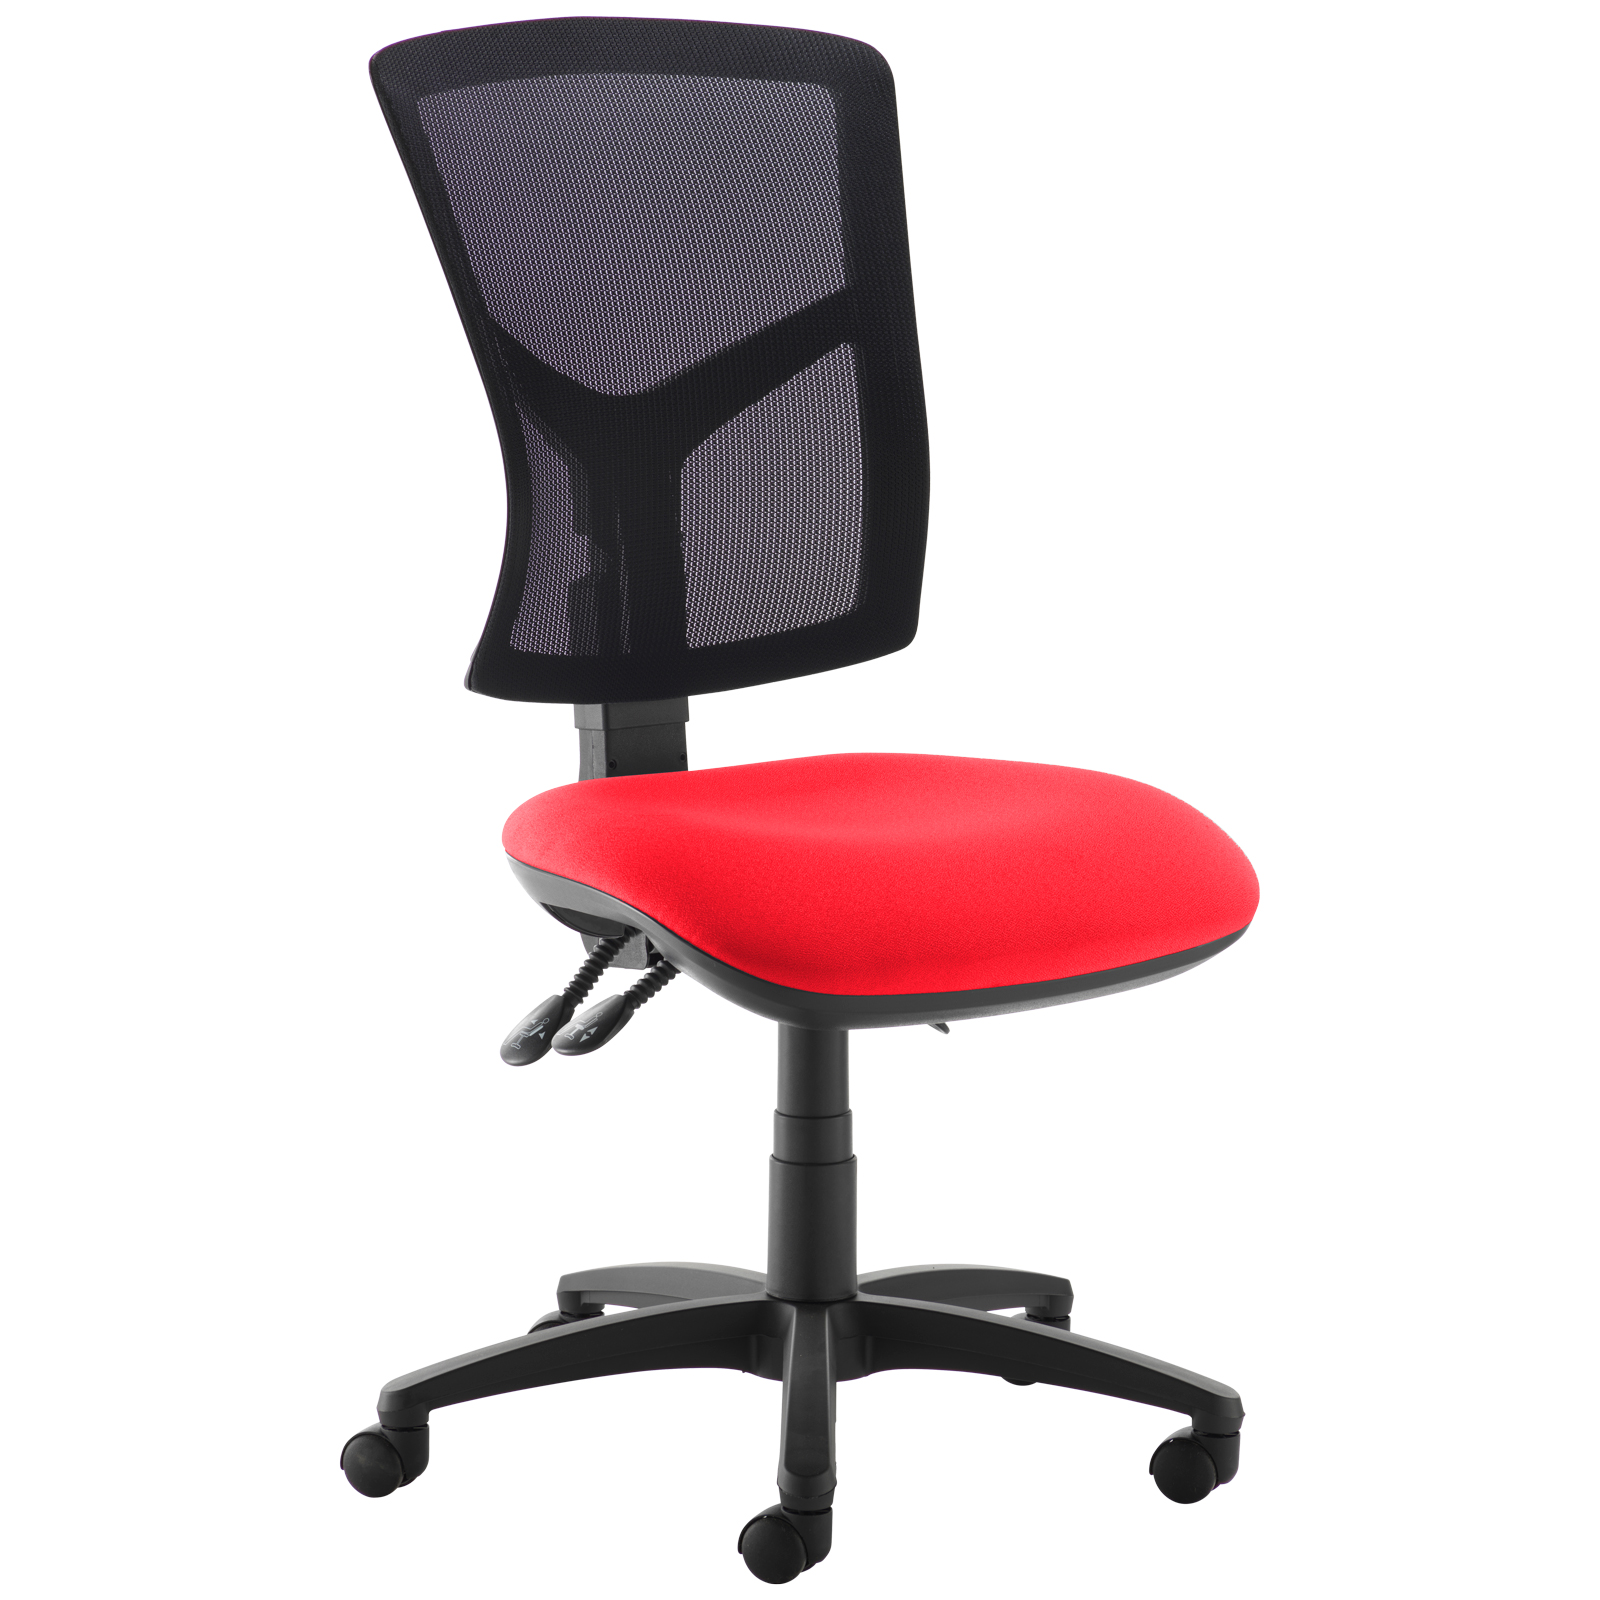 Desk Chairs Senza high mesh back operator chair with no arms - red